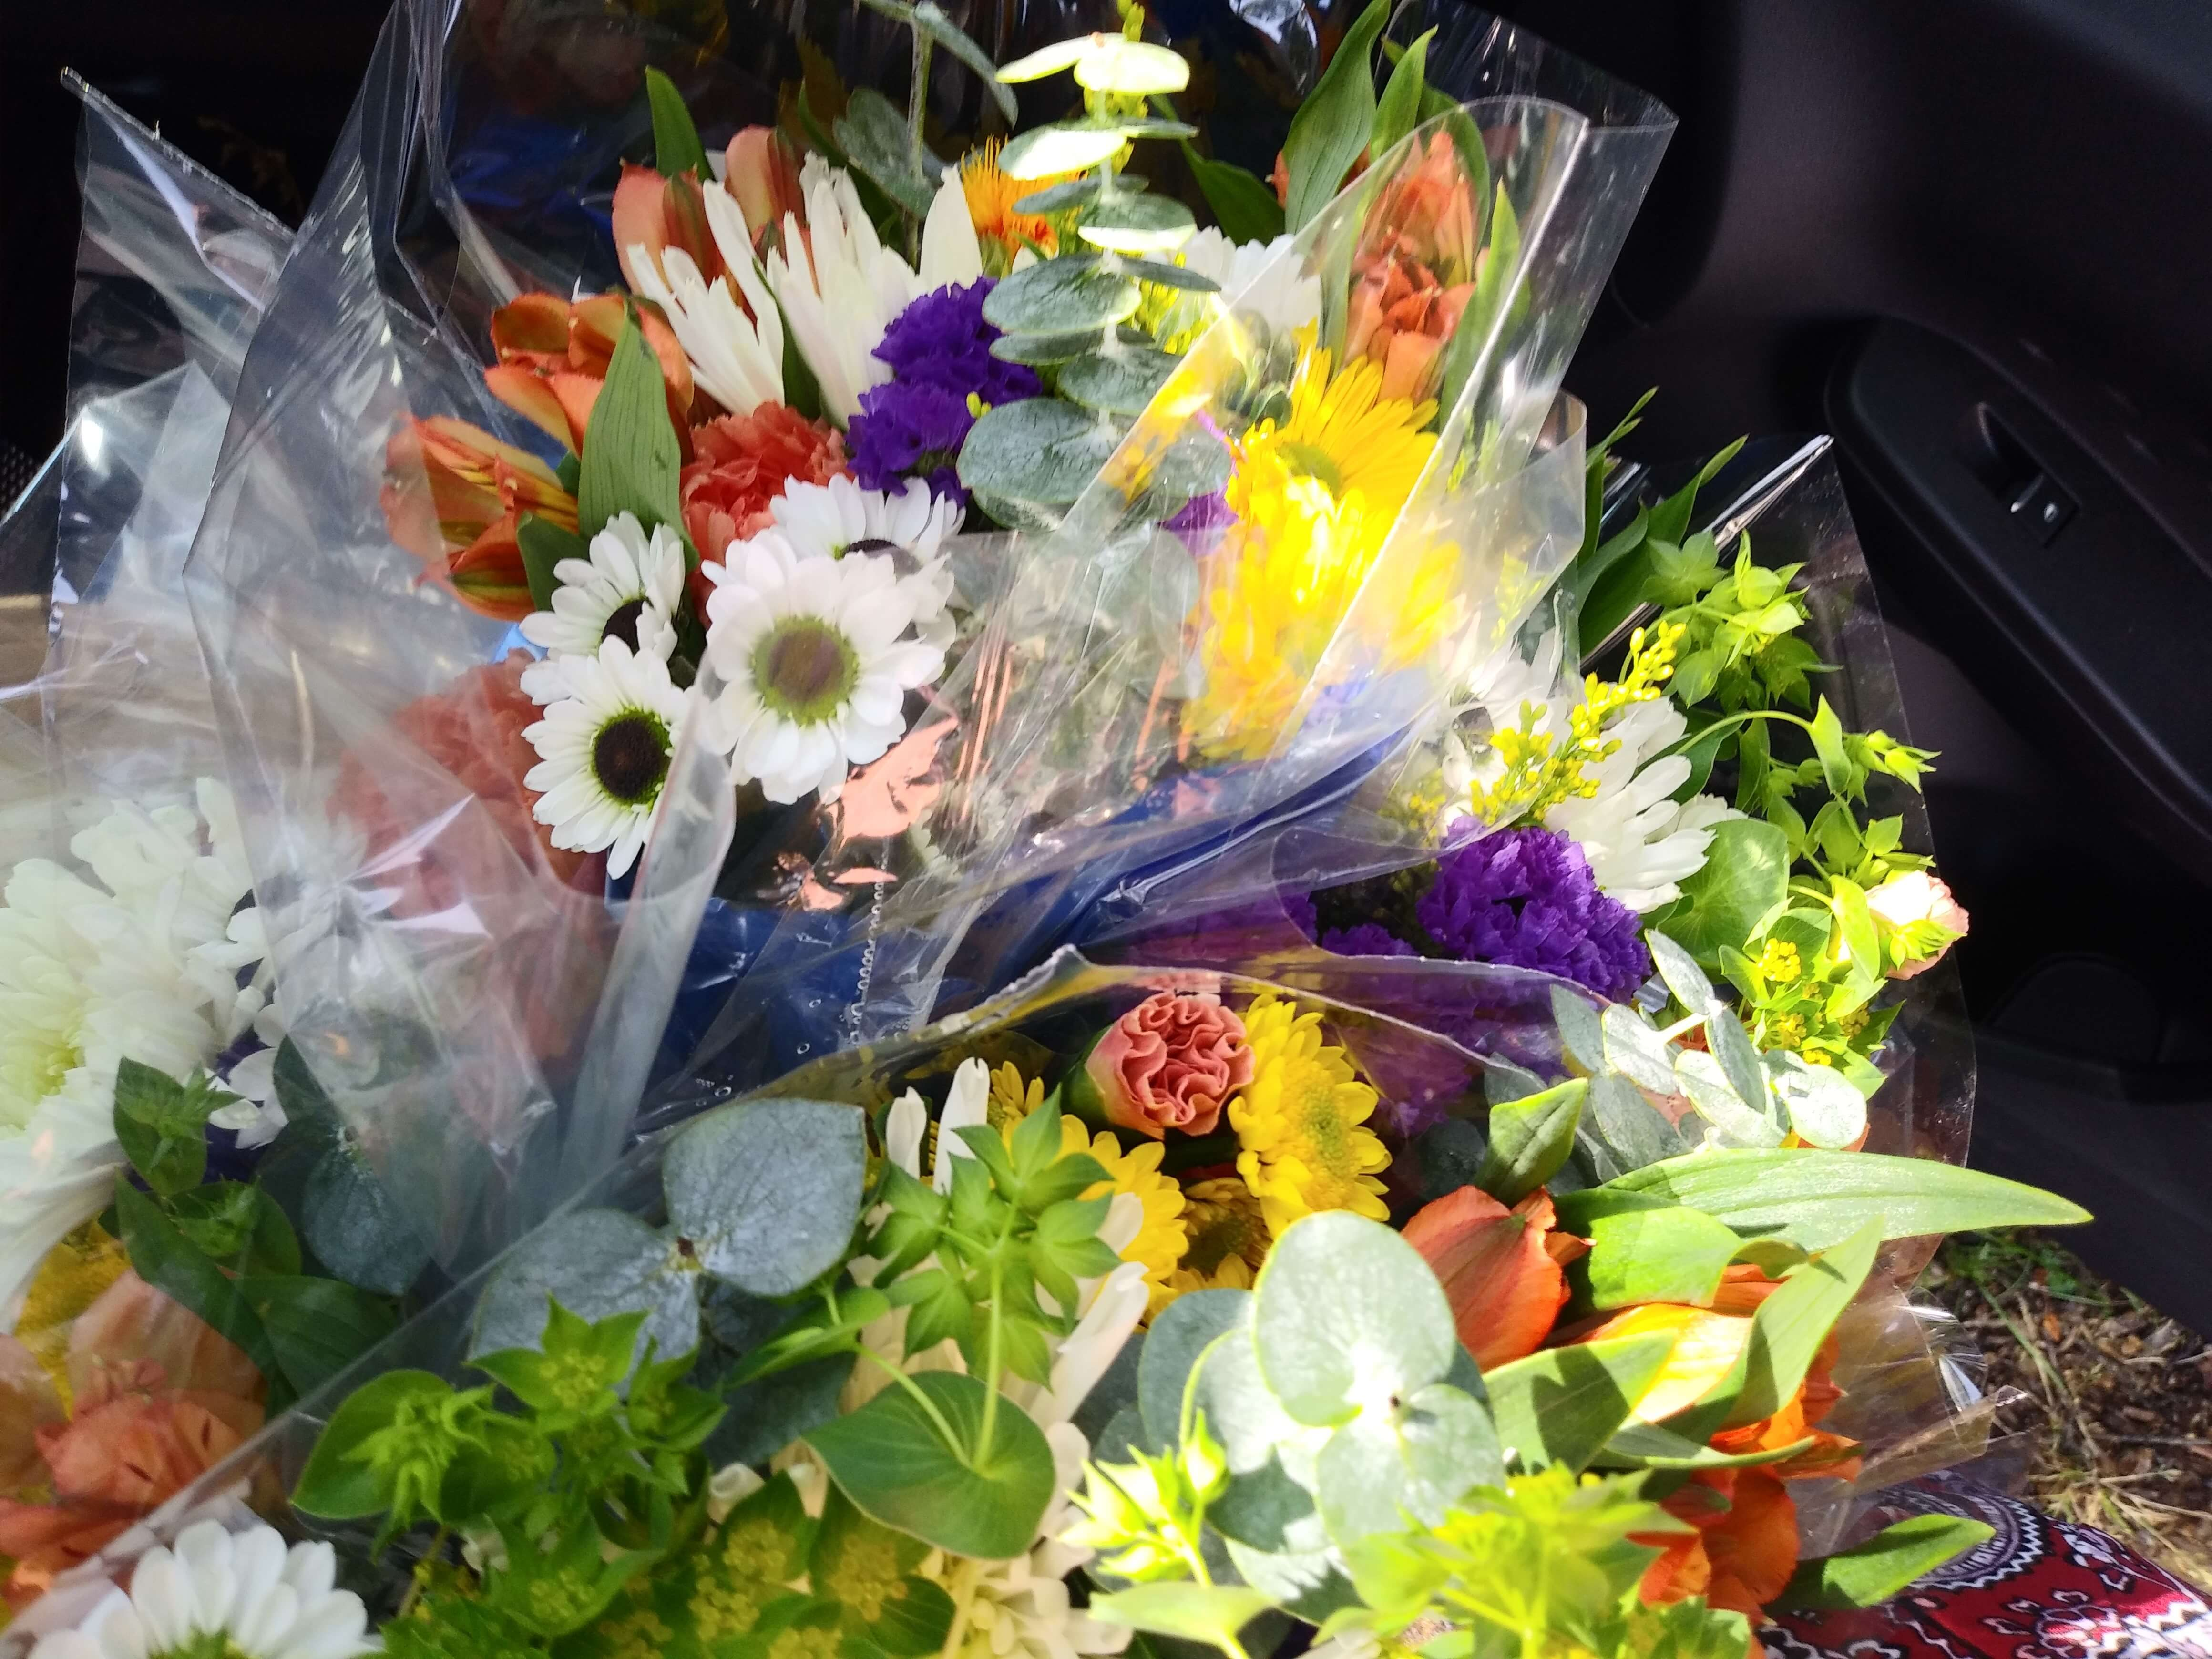 Close up photo of bouquet of flowers